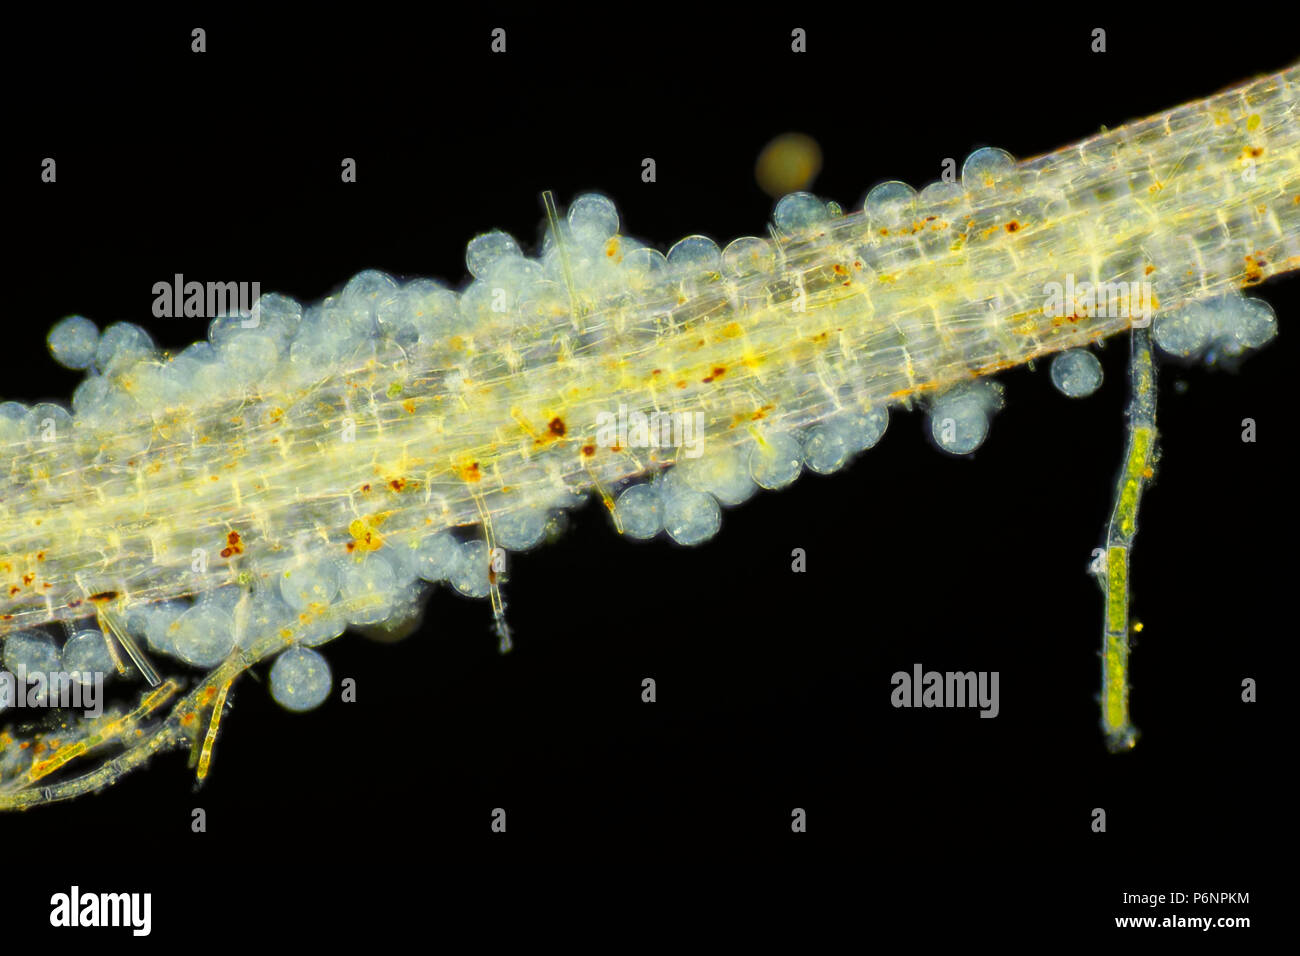 Microscopic view of unspecified eggs on Common duckweed (Lemna minor) root. Darkfield illumination. - Stock Image